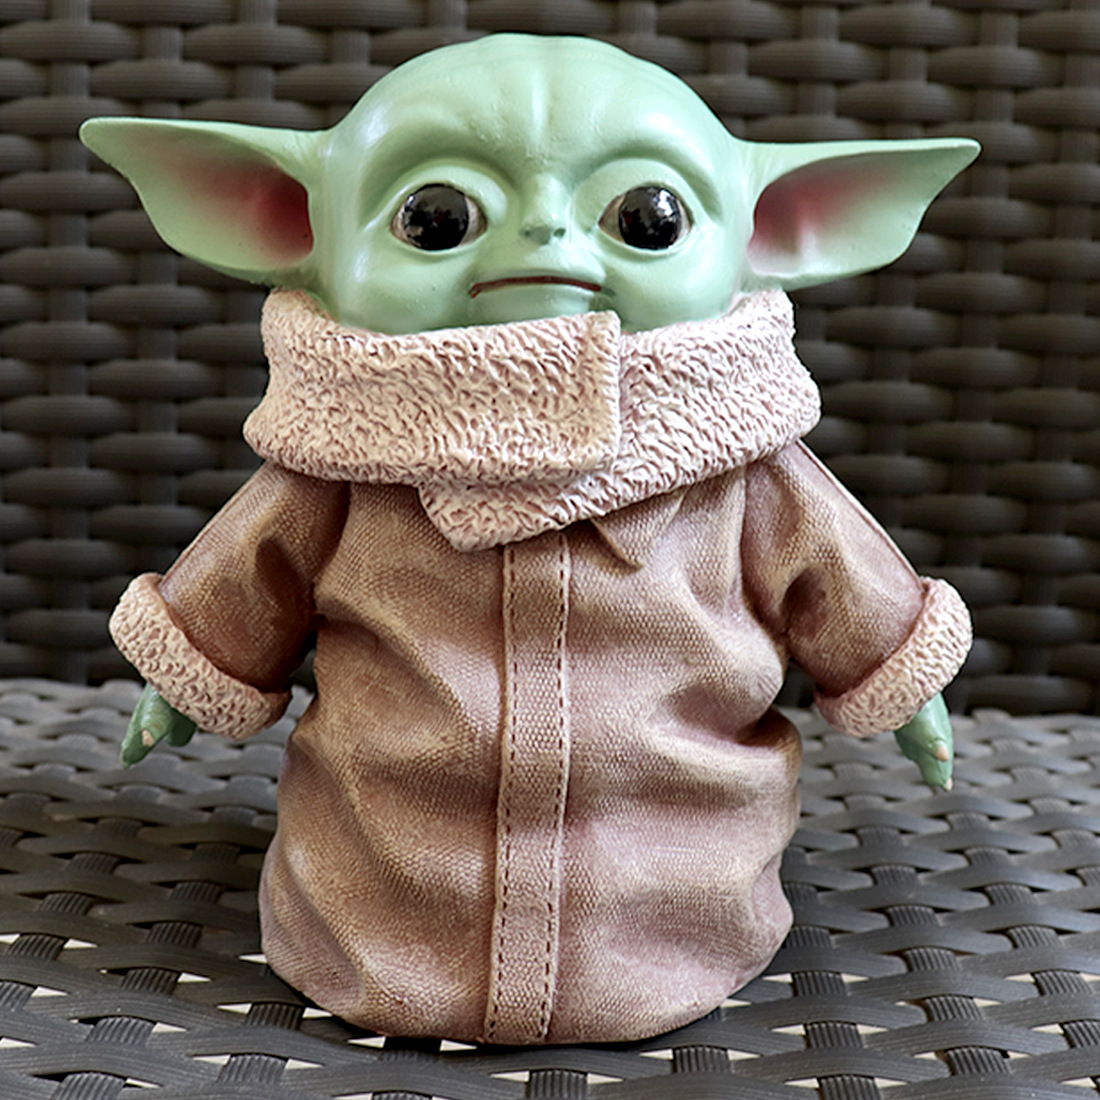 15cm Star Wars Plush Yoda Baby Ornament The Mandalorian Yoda Baby Plush Doll Lifelike Perfect Model Toys